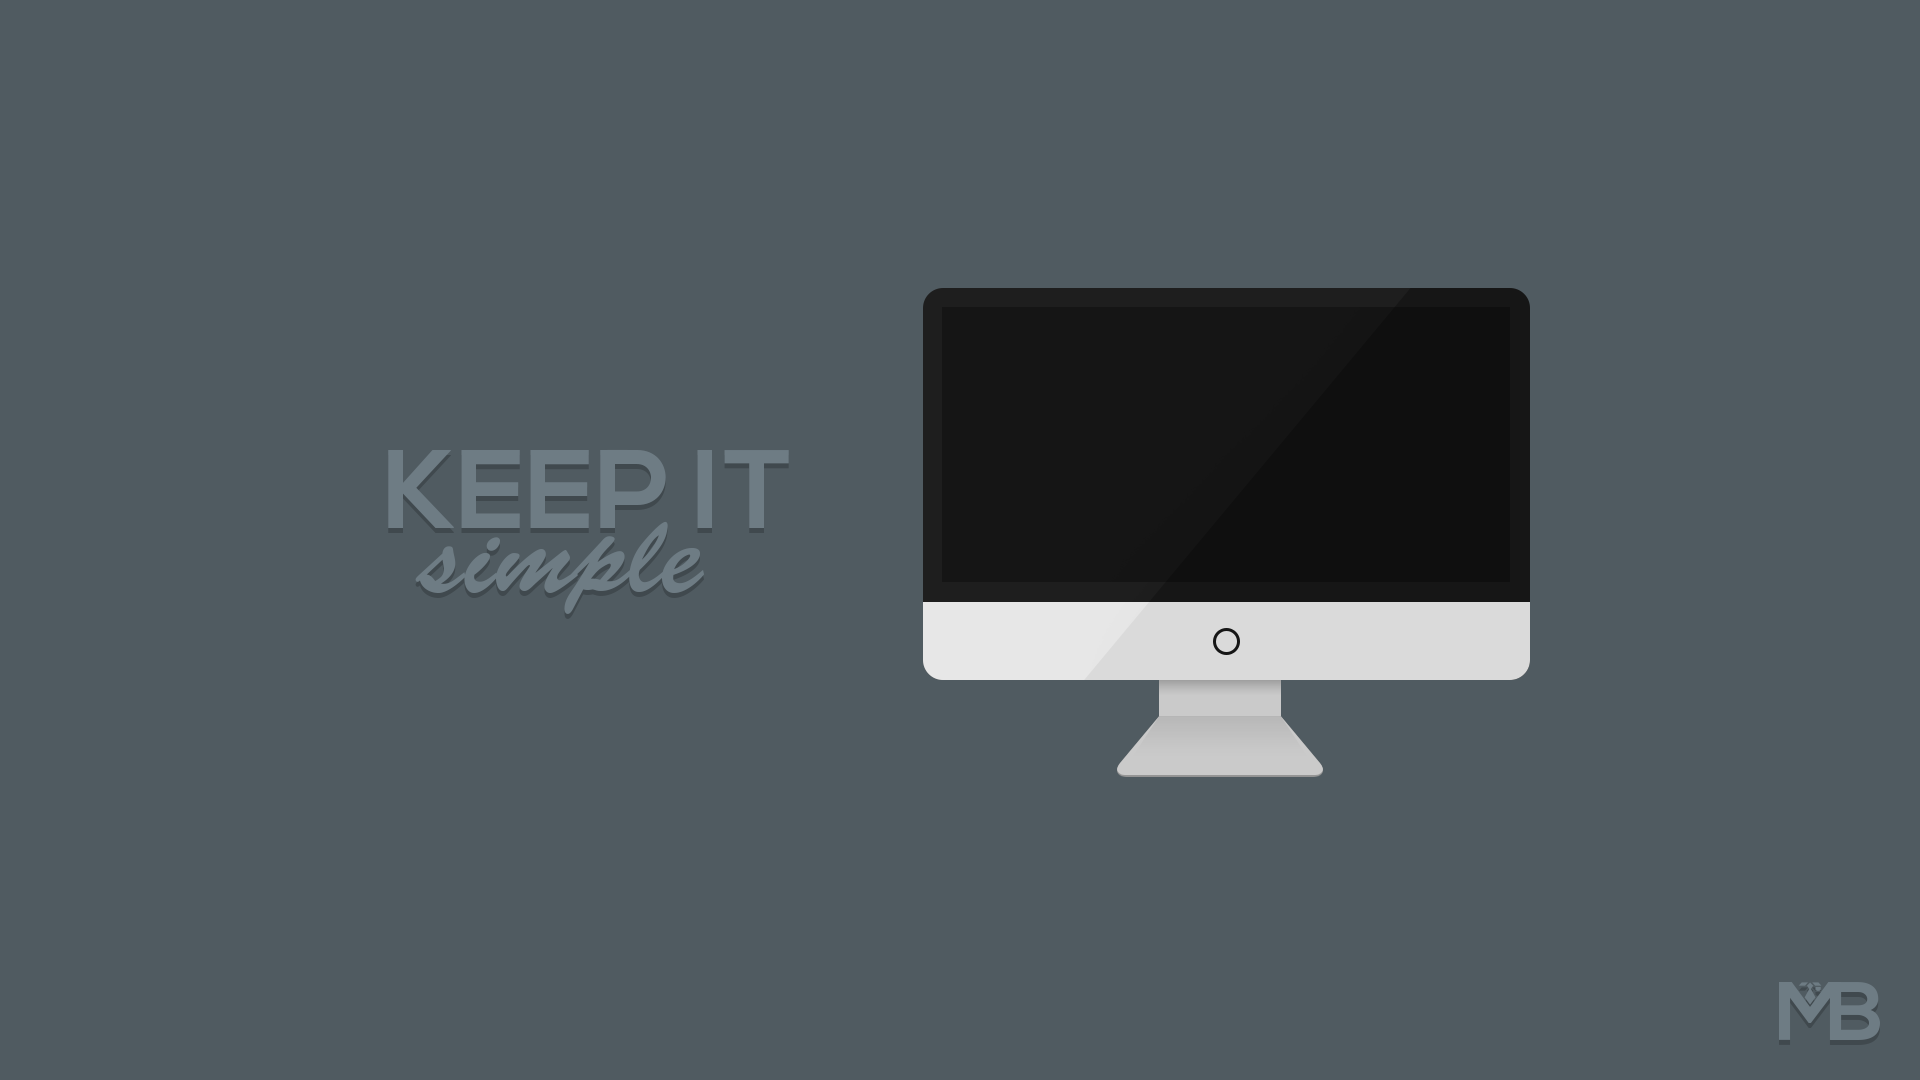 Keep It Simple - Minimalist Wallpaper by MartinBerthelsen